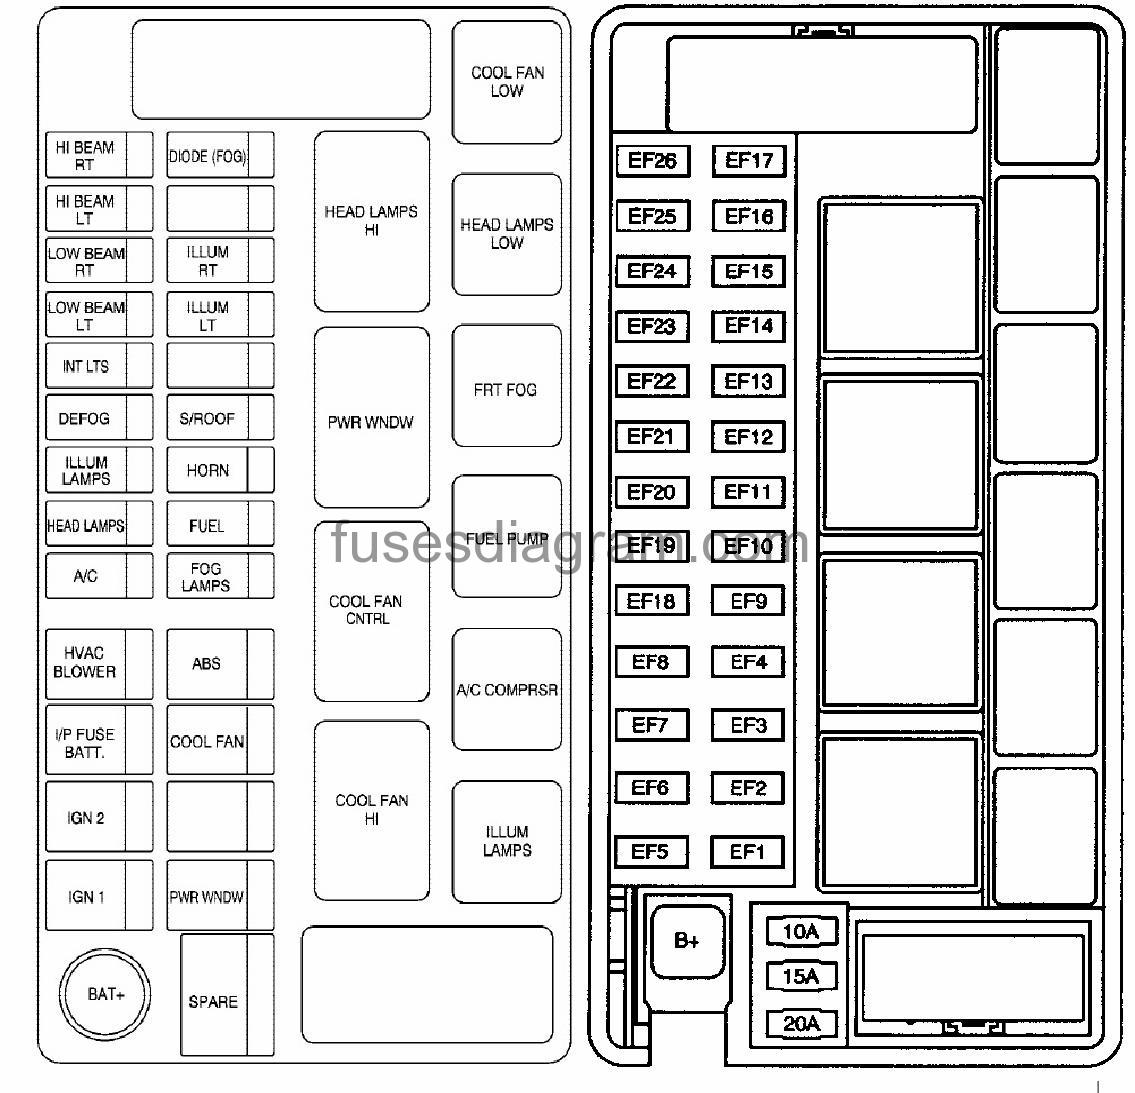 small resolution of 2009 chevy aveo fuse box wiring schematic data 2009 chevrolet aveo fuse box 2009 chevy aveo fuse box